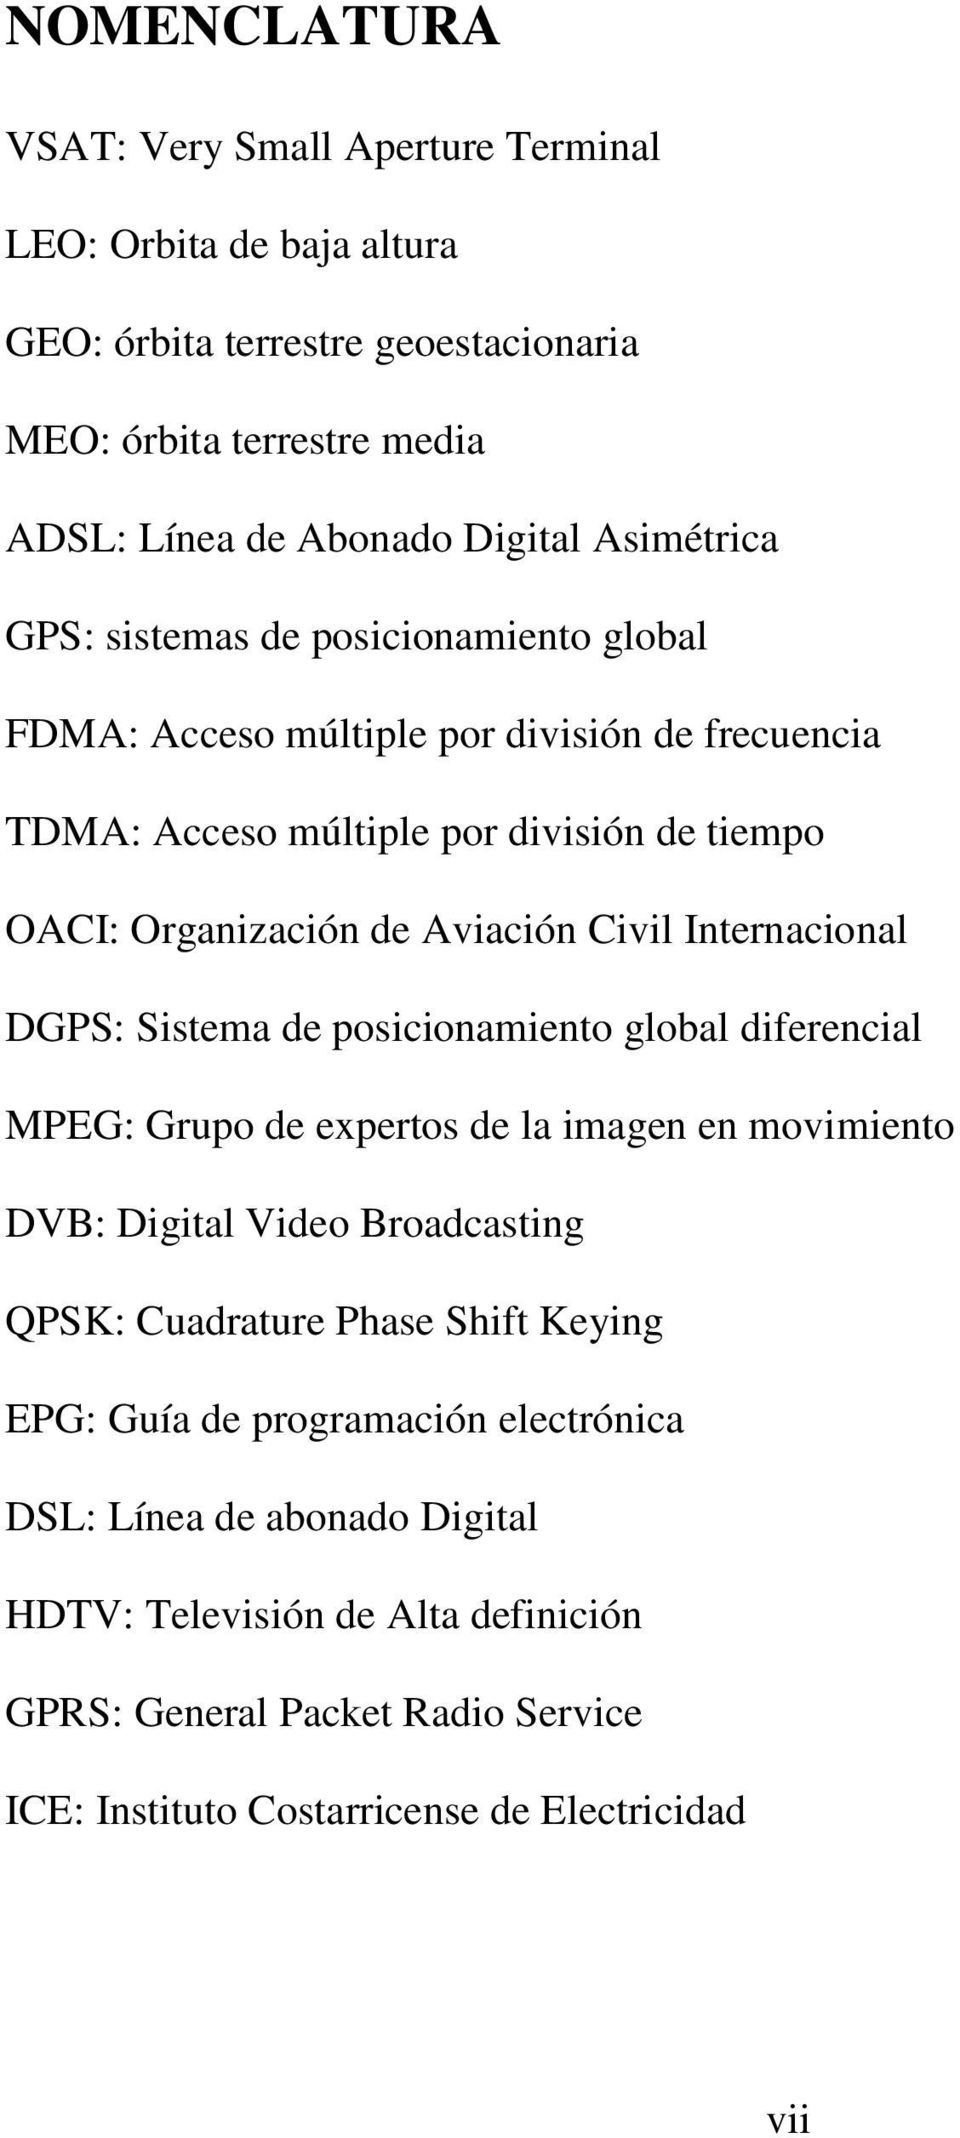 Internacional DGPS: Sistema de posicionamiento global diferencial MPEG: Grupo de expertos de la imagen en movimiento DVB: Digital Video Broadcasting QPSK: Cuadrature Phase Shift